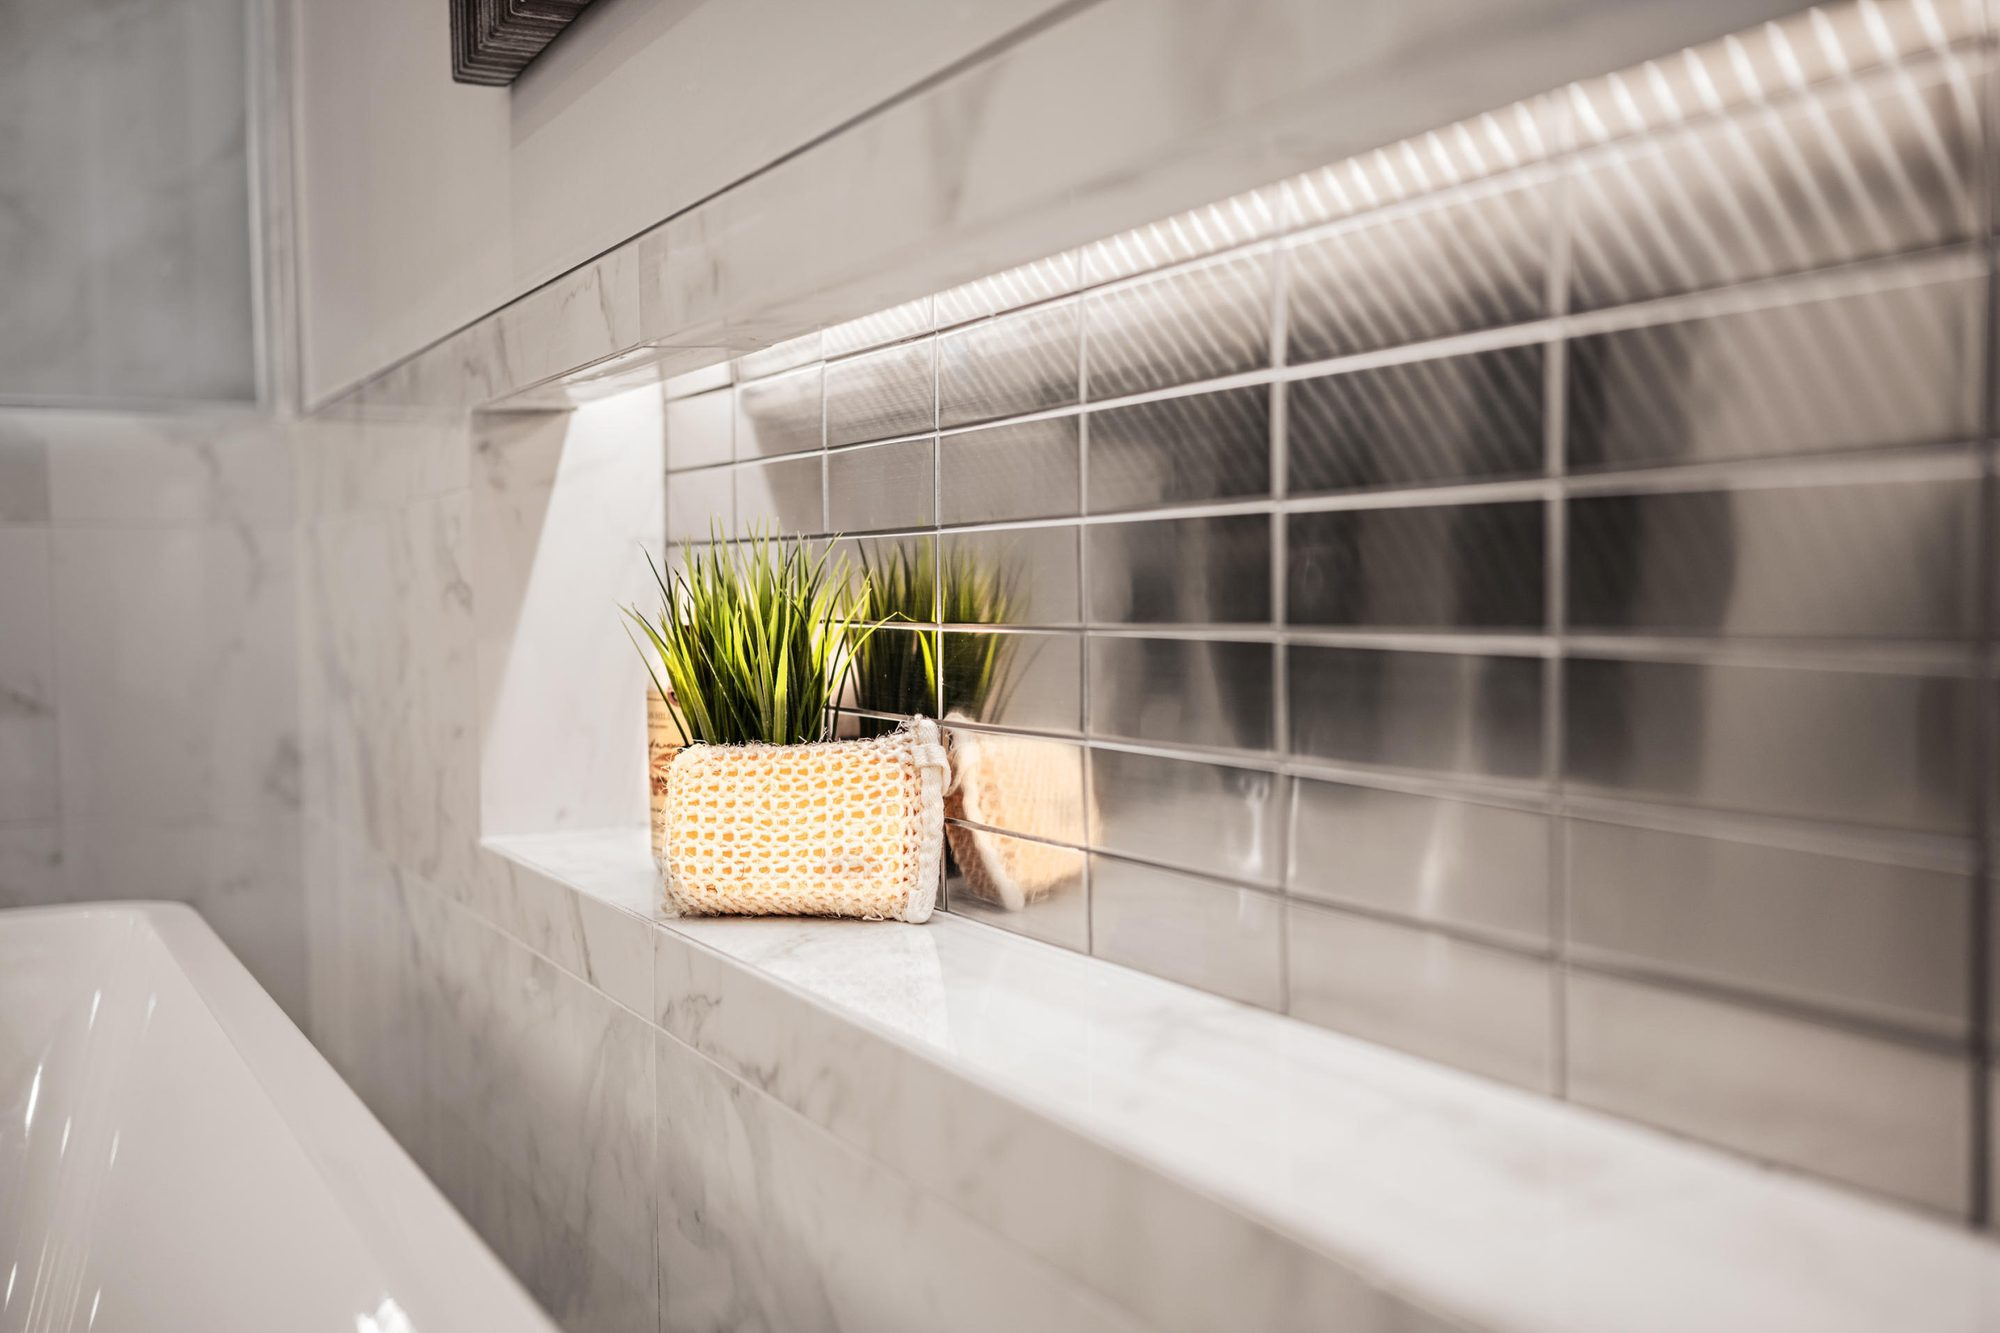 Small details matter in an ultra modern bathroom design. Simple minimalist choices tend to work best. Clean tub shelf with marble and silver metallic backsplash tiles.